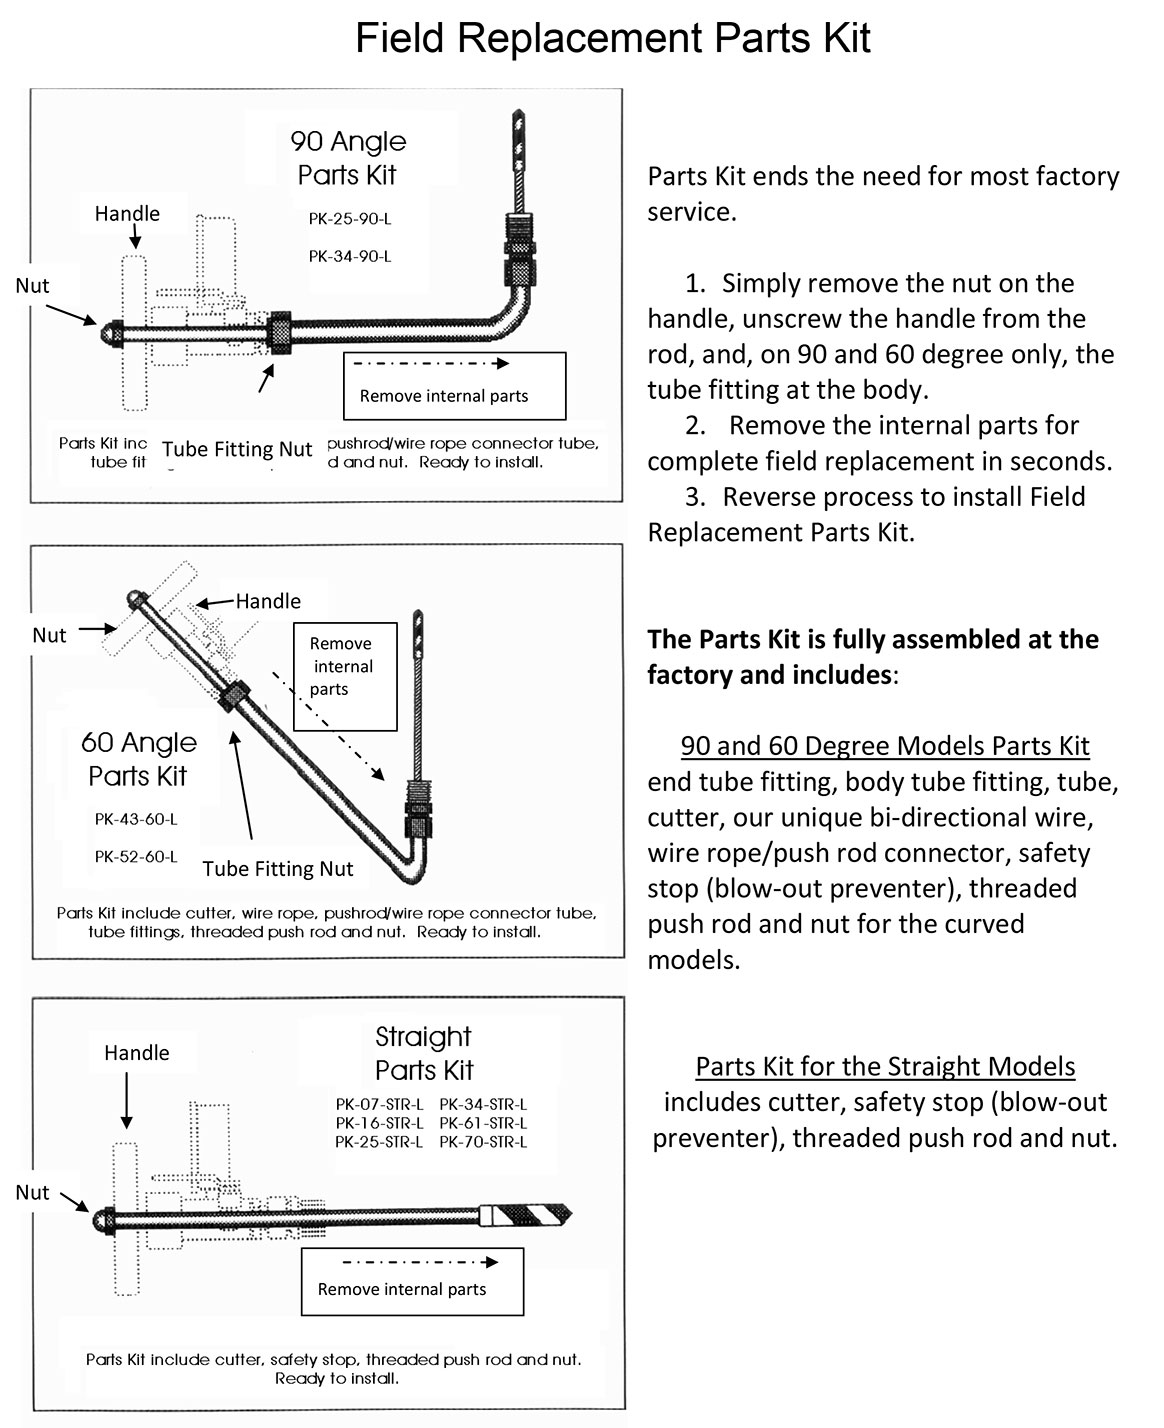 Field-Replacement-Parts-Kit-instructions • A & W Devices